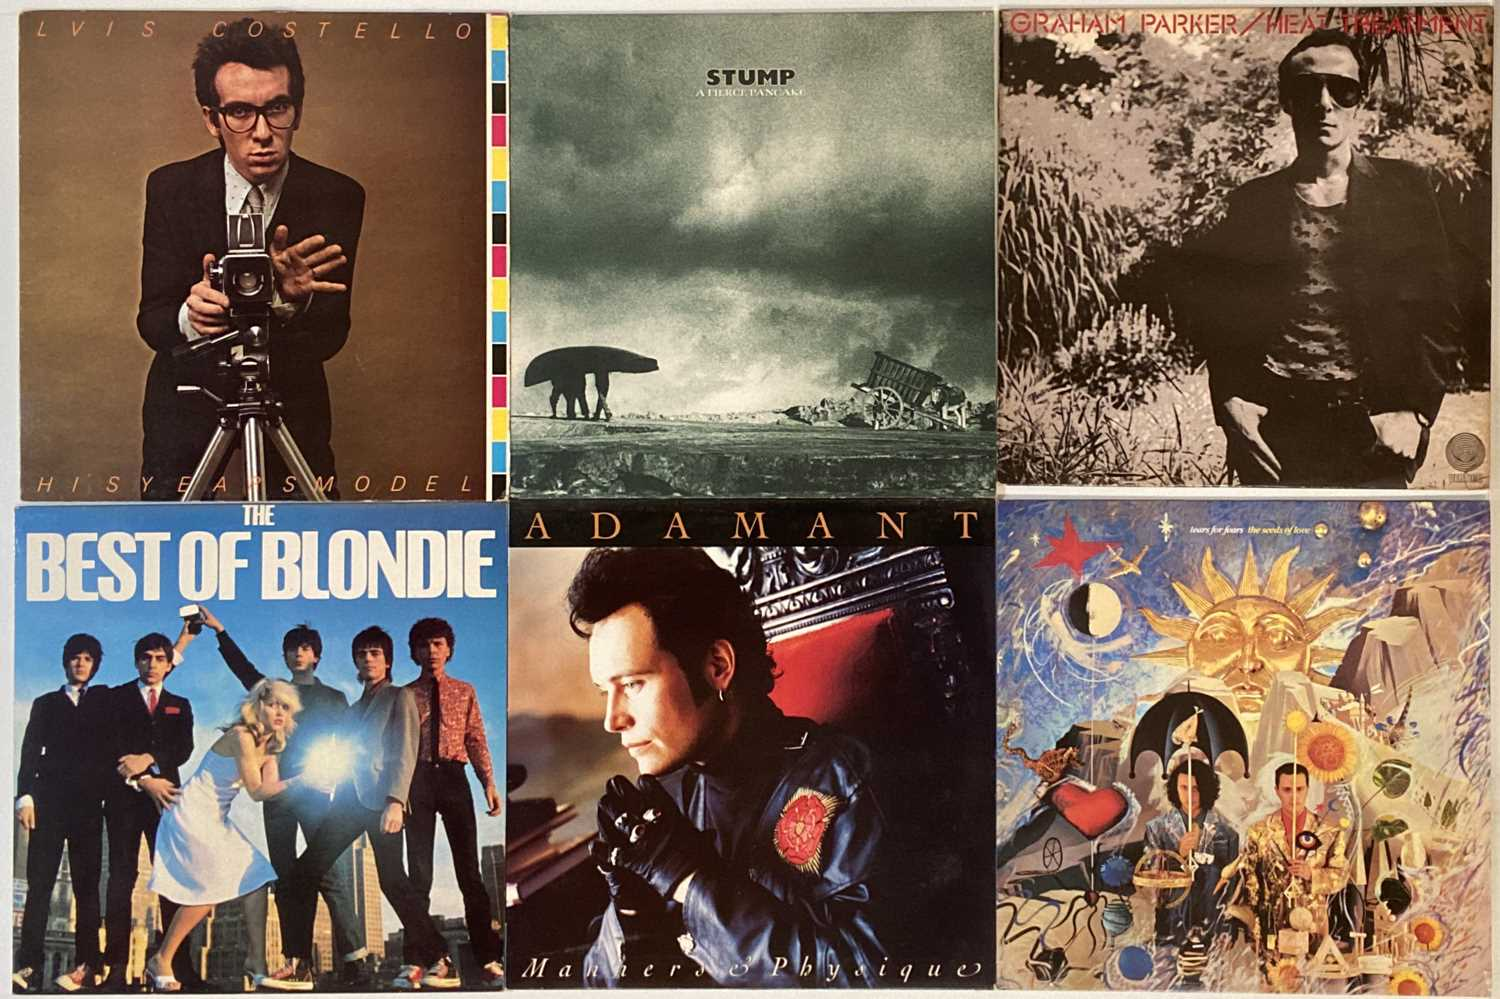 PUNK/INDIE/NEW-WAVE/COOL POP – LPs - Image 4 of 5